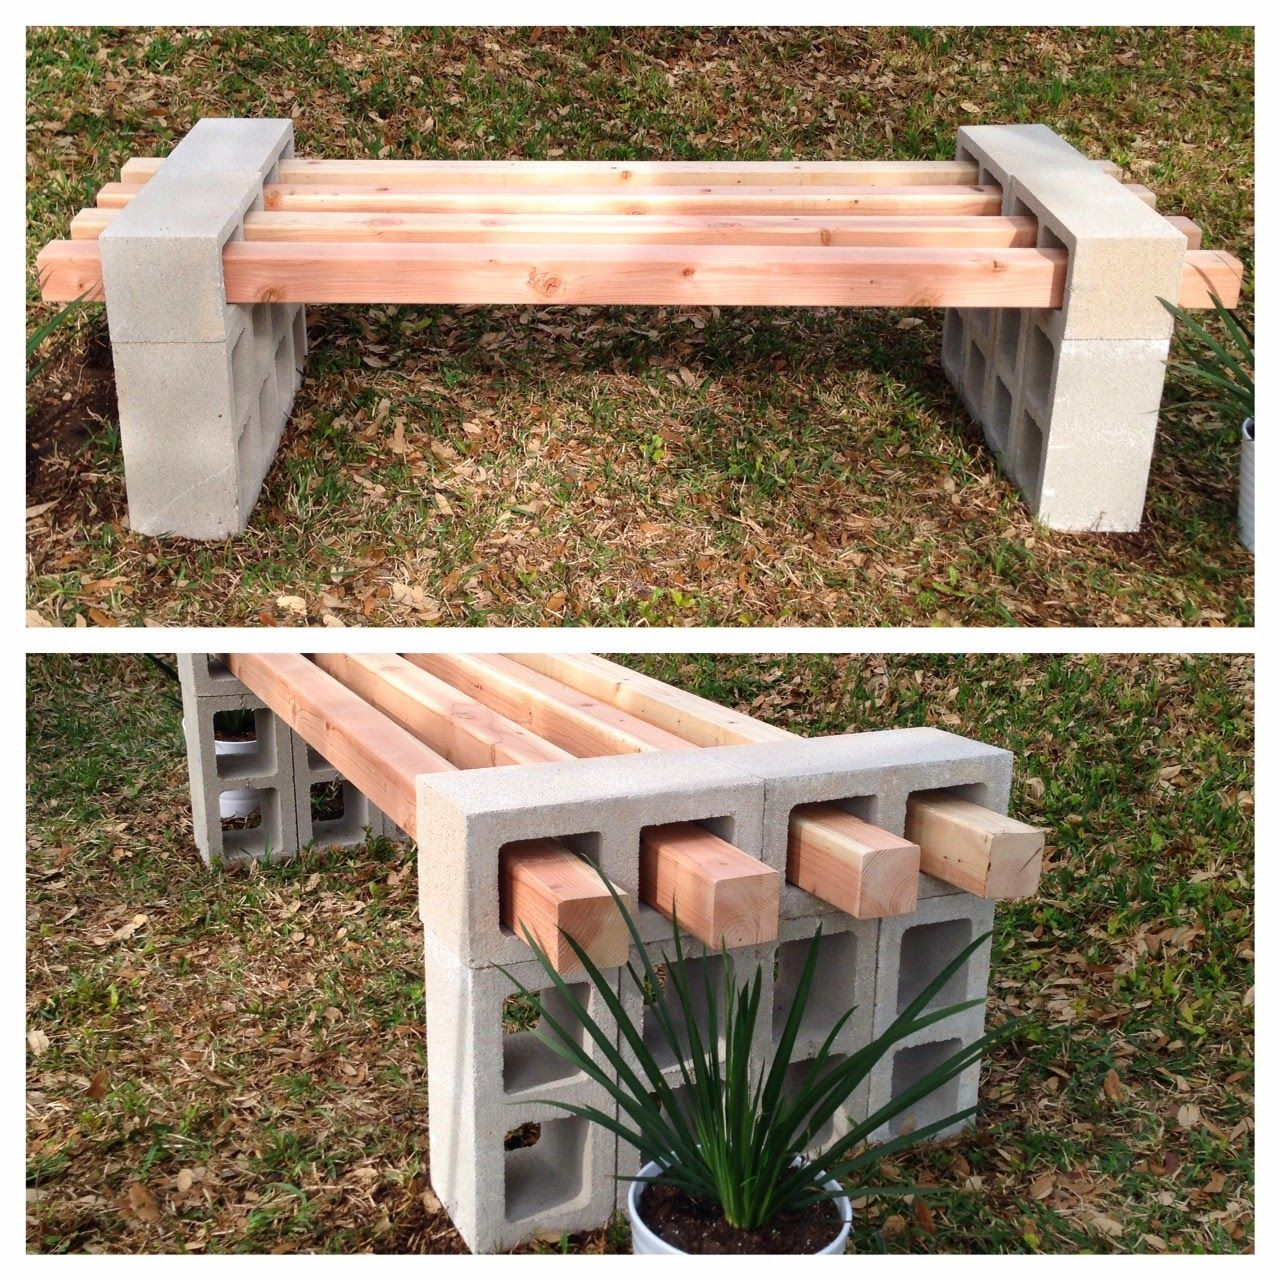 Diy patio furniture cinder blocks - 20 Awesome Diy Cinder Block Projects For Your Homestead